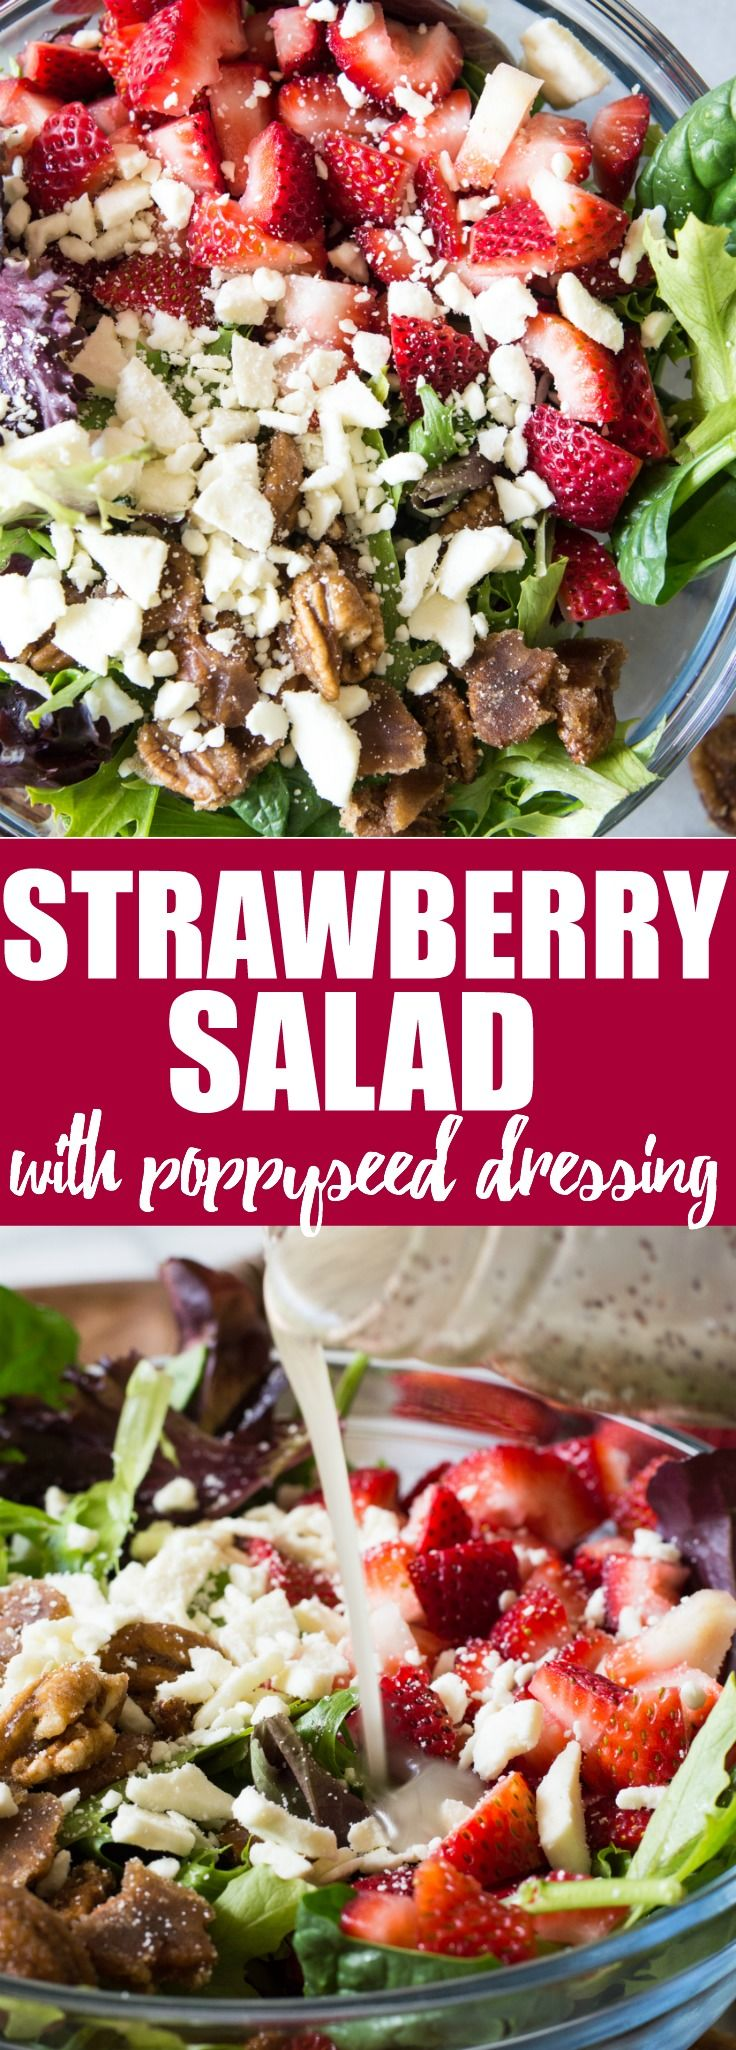 Strawberry Salad with Poppyseed Dressing (and Recipe Video!)  This salad is loaded up with fresh strawberries, candied pecans, feta cheese and drizzled with an easy to make sweet poppyseed dressing.  Perfect dish for springtime!